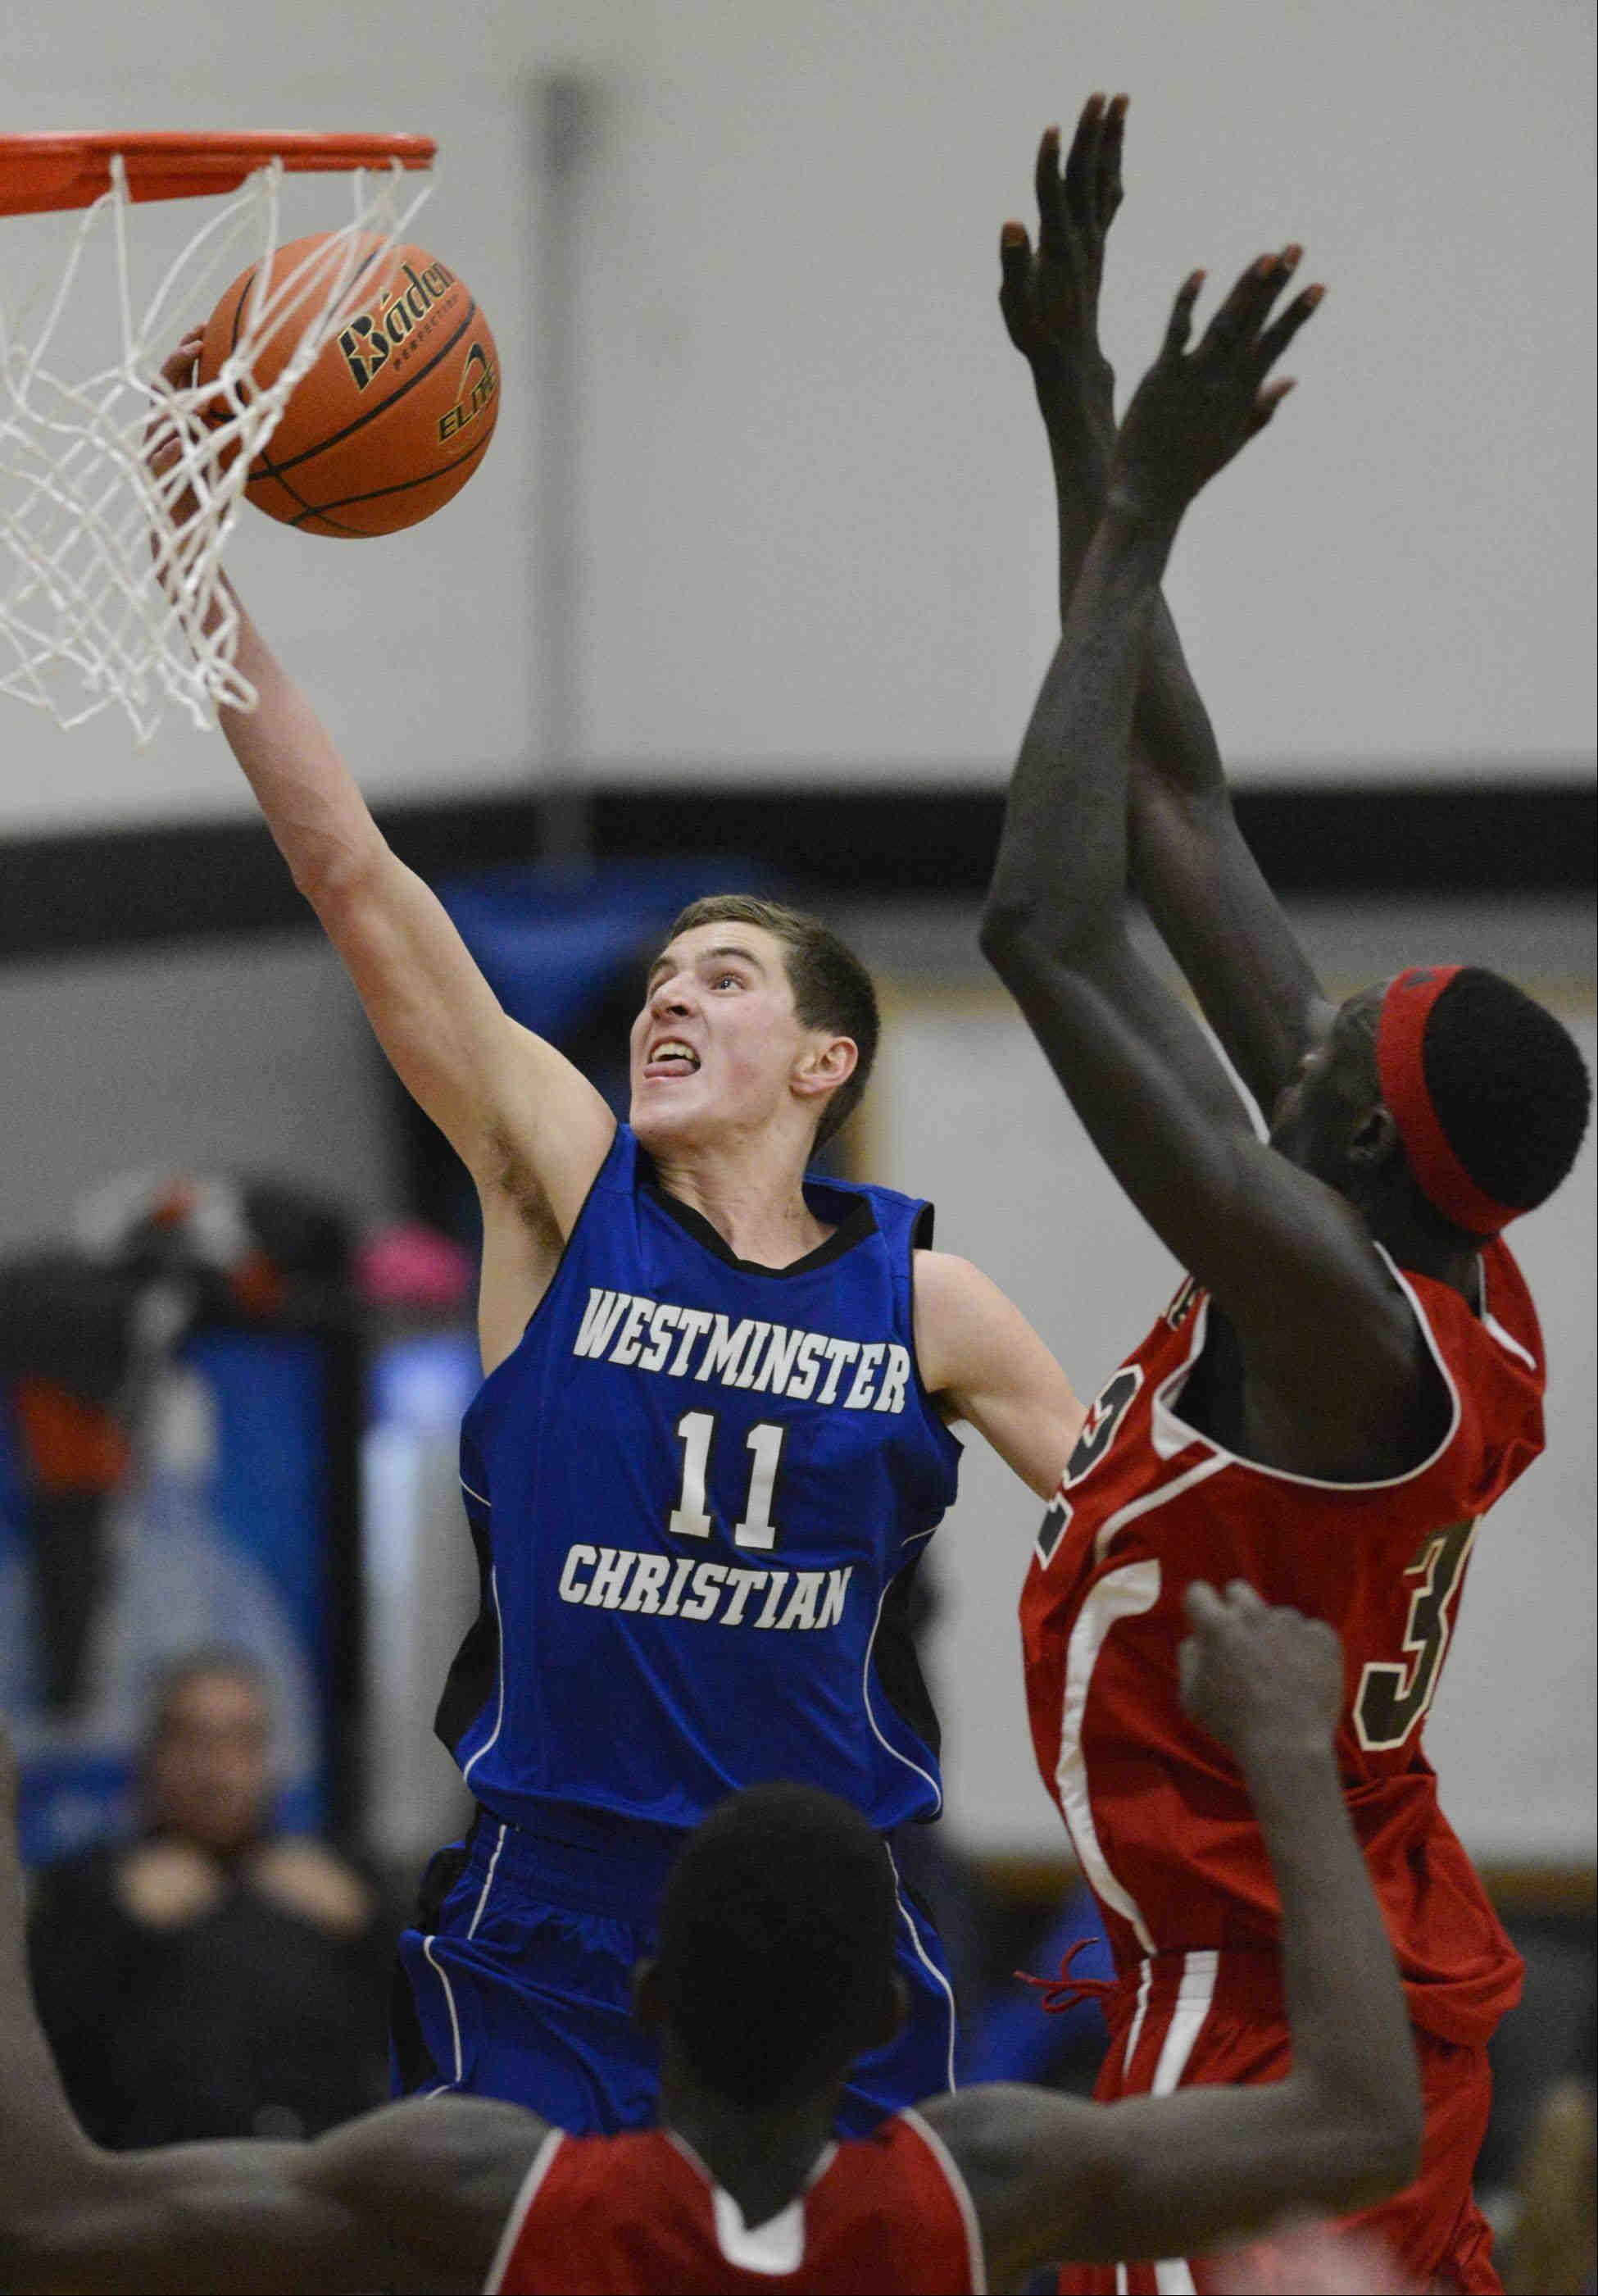 Westminster Christian's Will Woodhouse goes for a layup and is blocked by Mooseheart's Makur Puou.